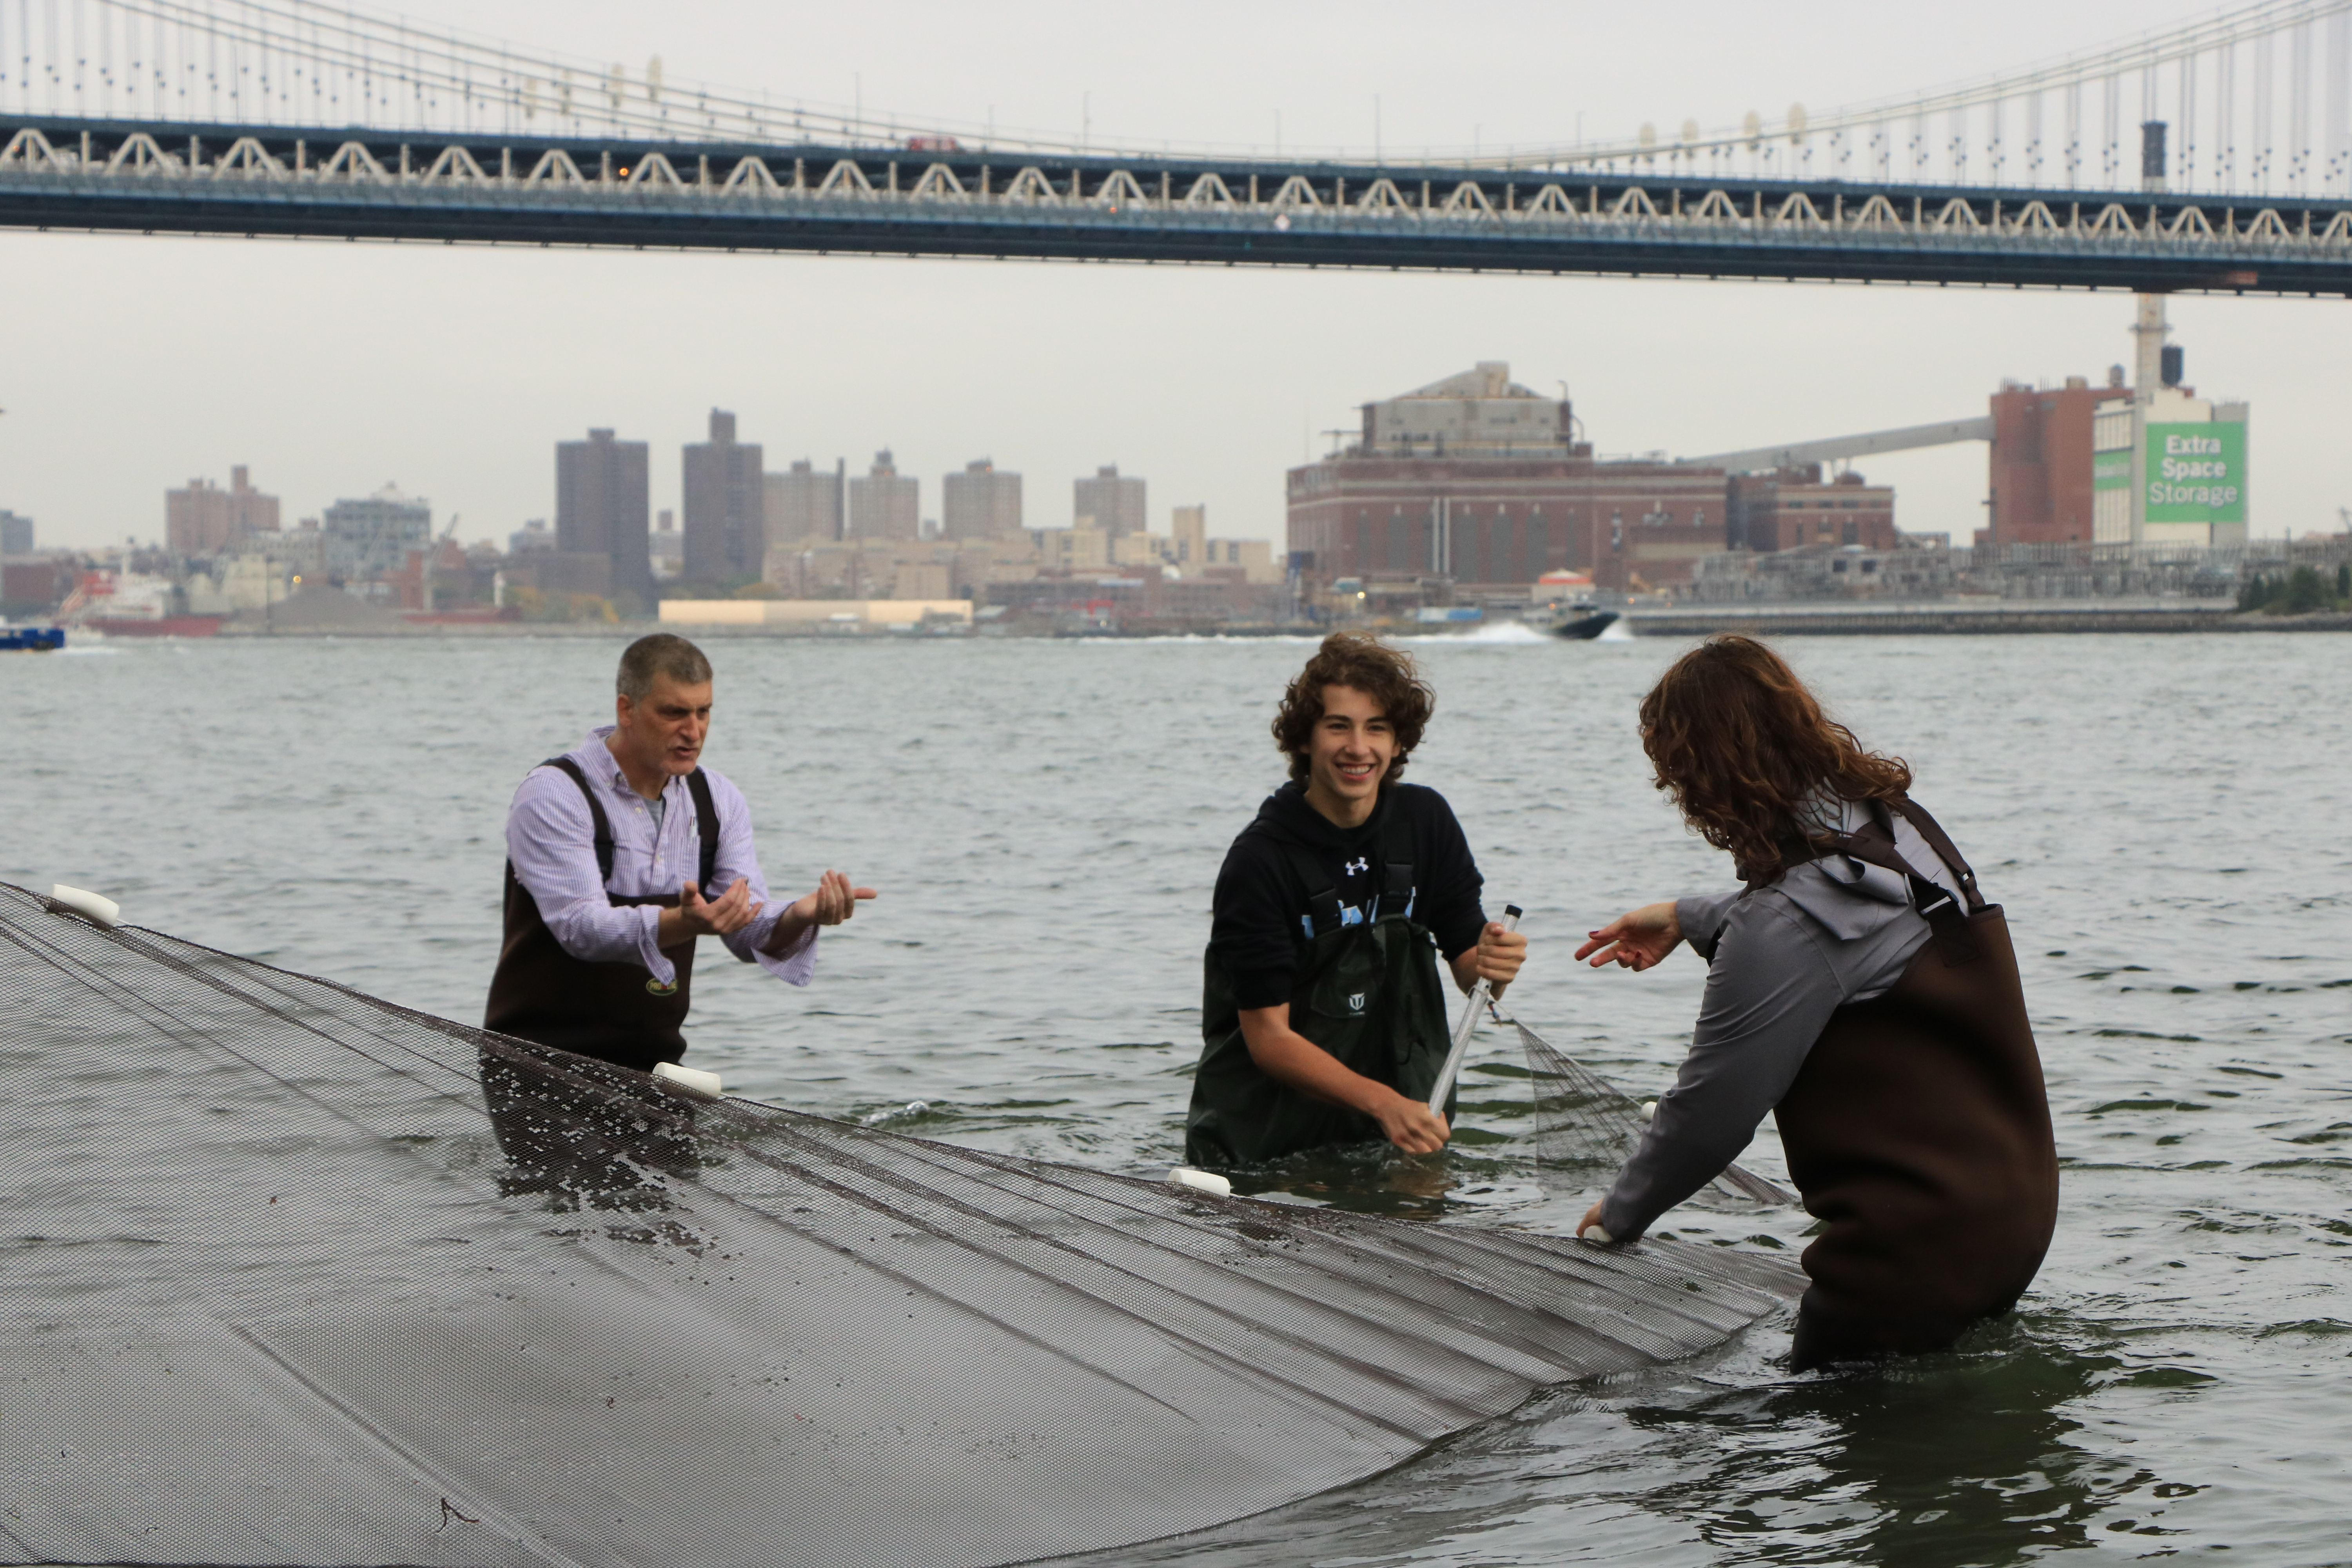 Students using a seine net during the event